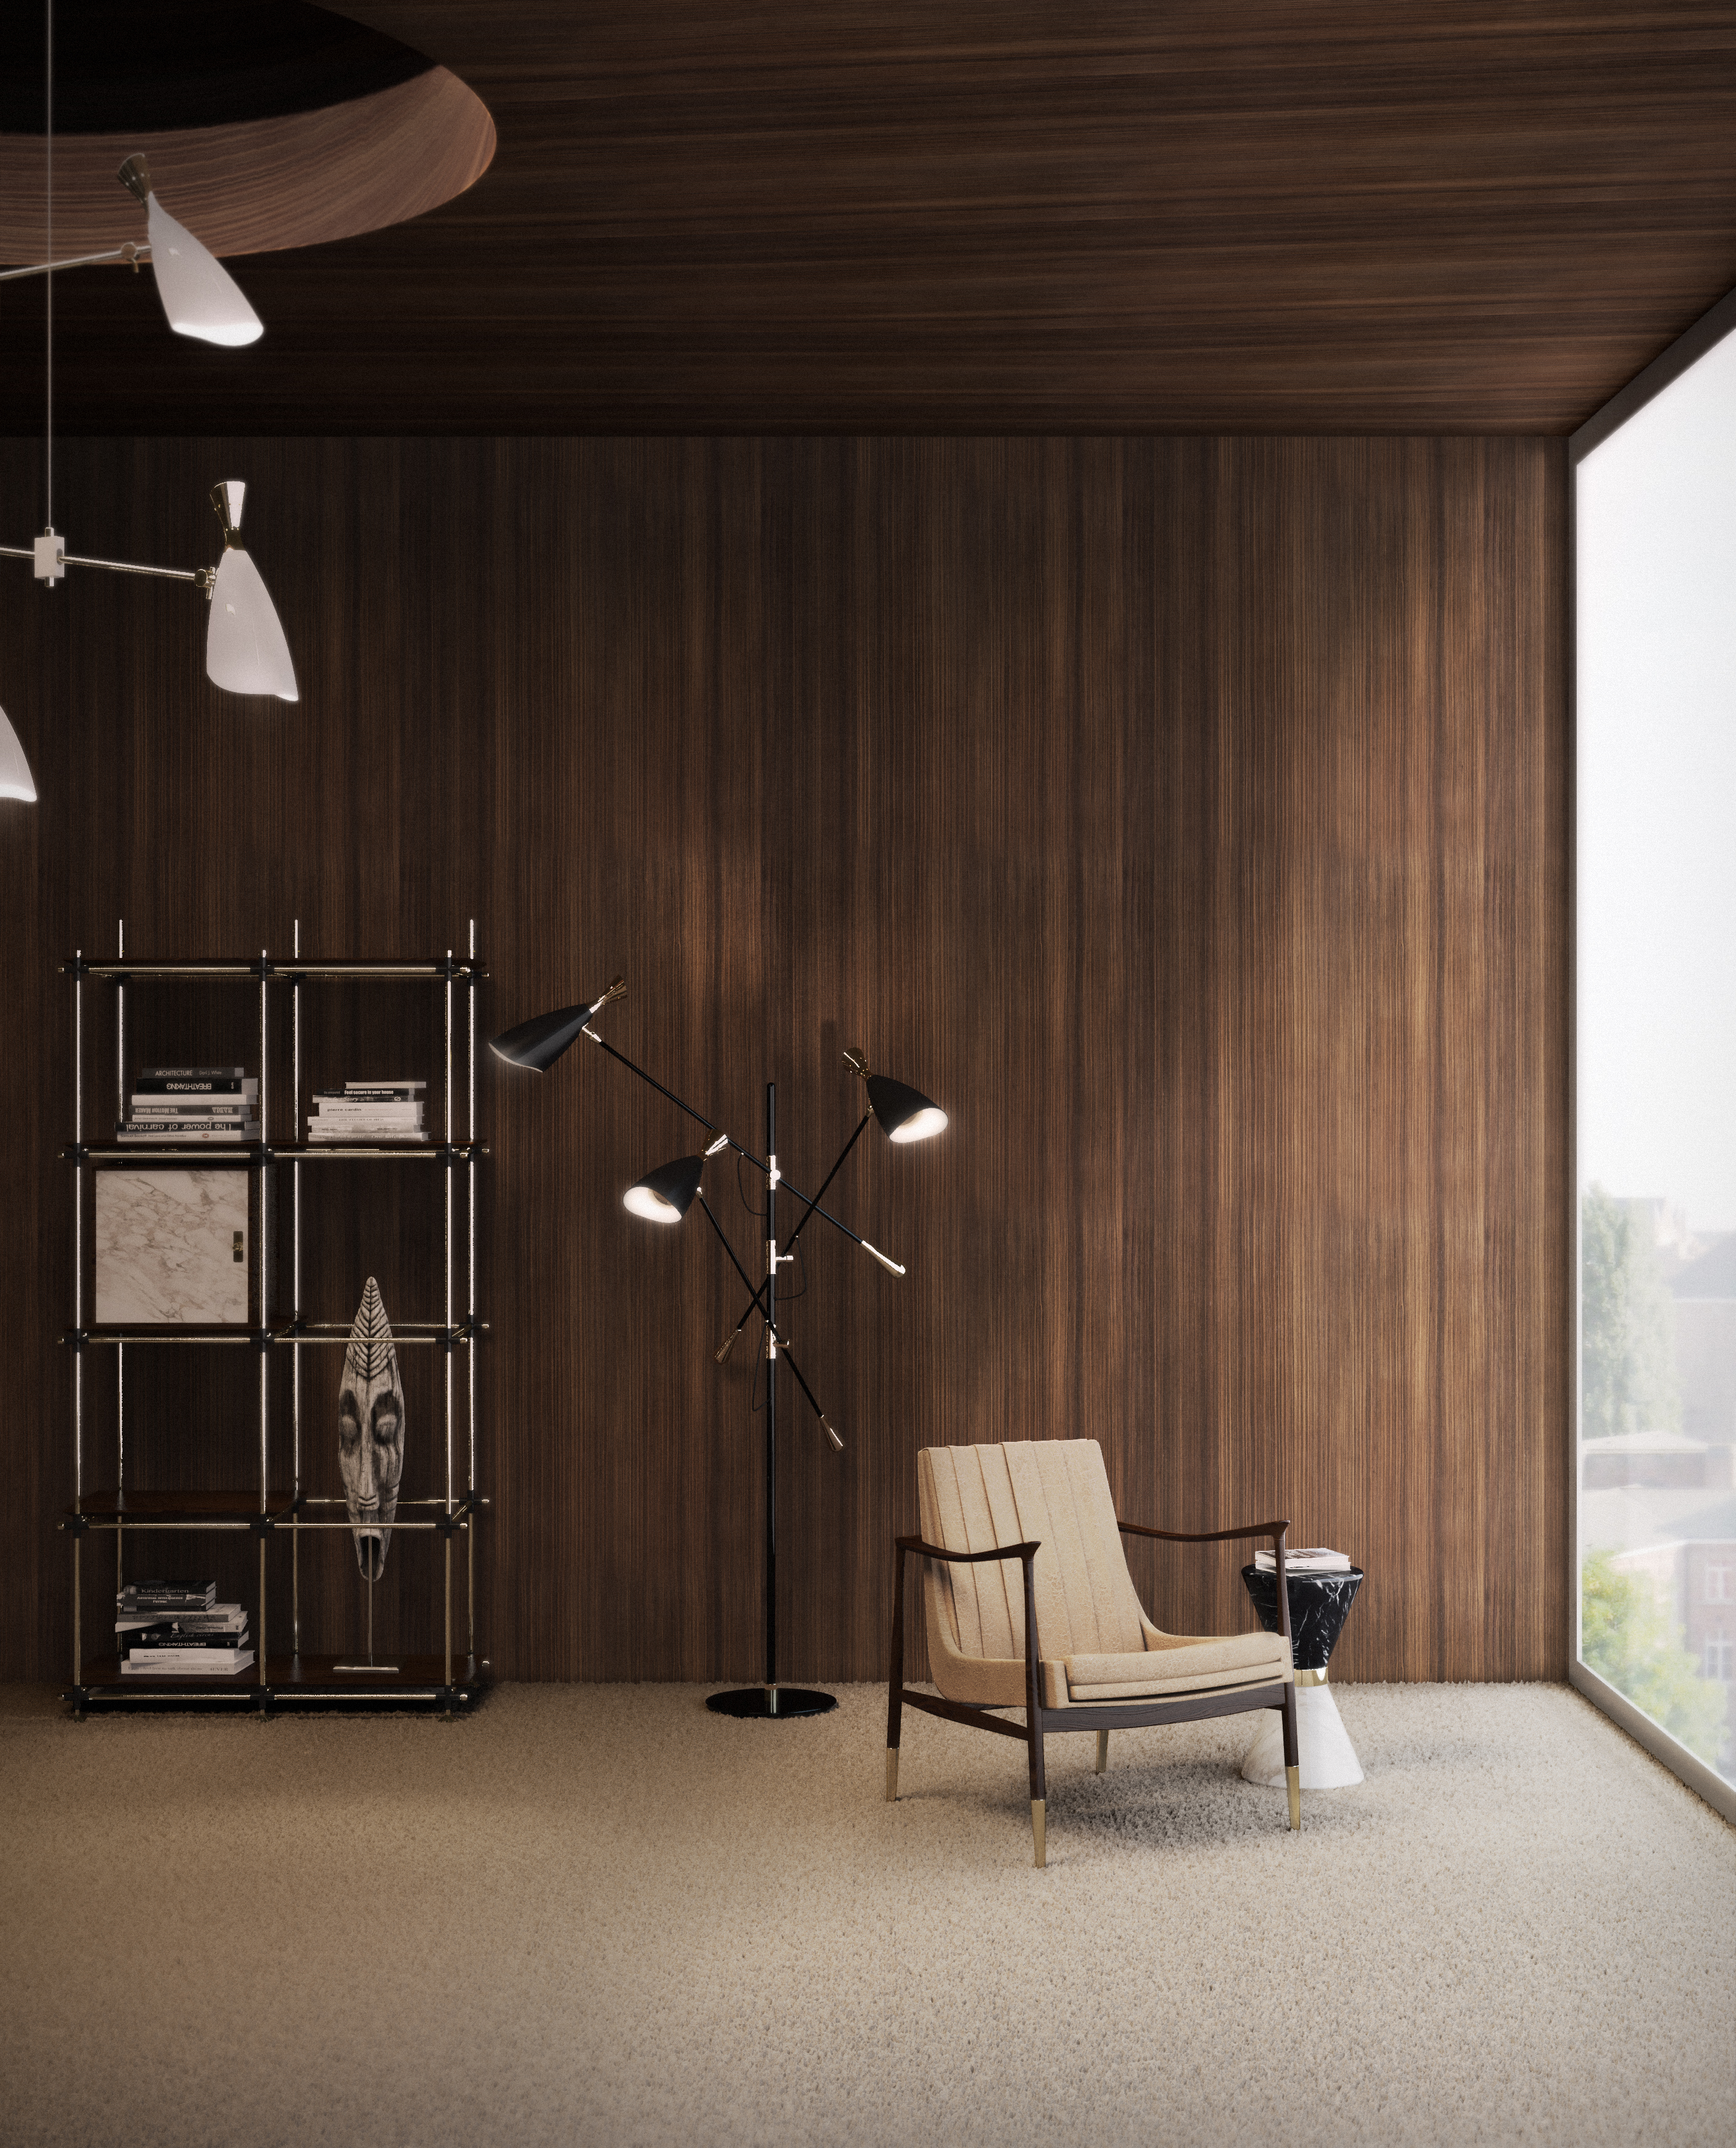 Let There Be Light 5 Modern Floor Lamps To Light Up Your Home 5 modern floor lamps Let There Be Light: 5 Modern Floor Lamps To Light Up Your Home Let There Be Light 5 Modern Floor Lamps To Light Up Your Home 5